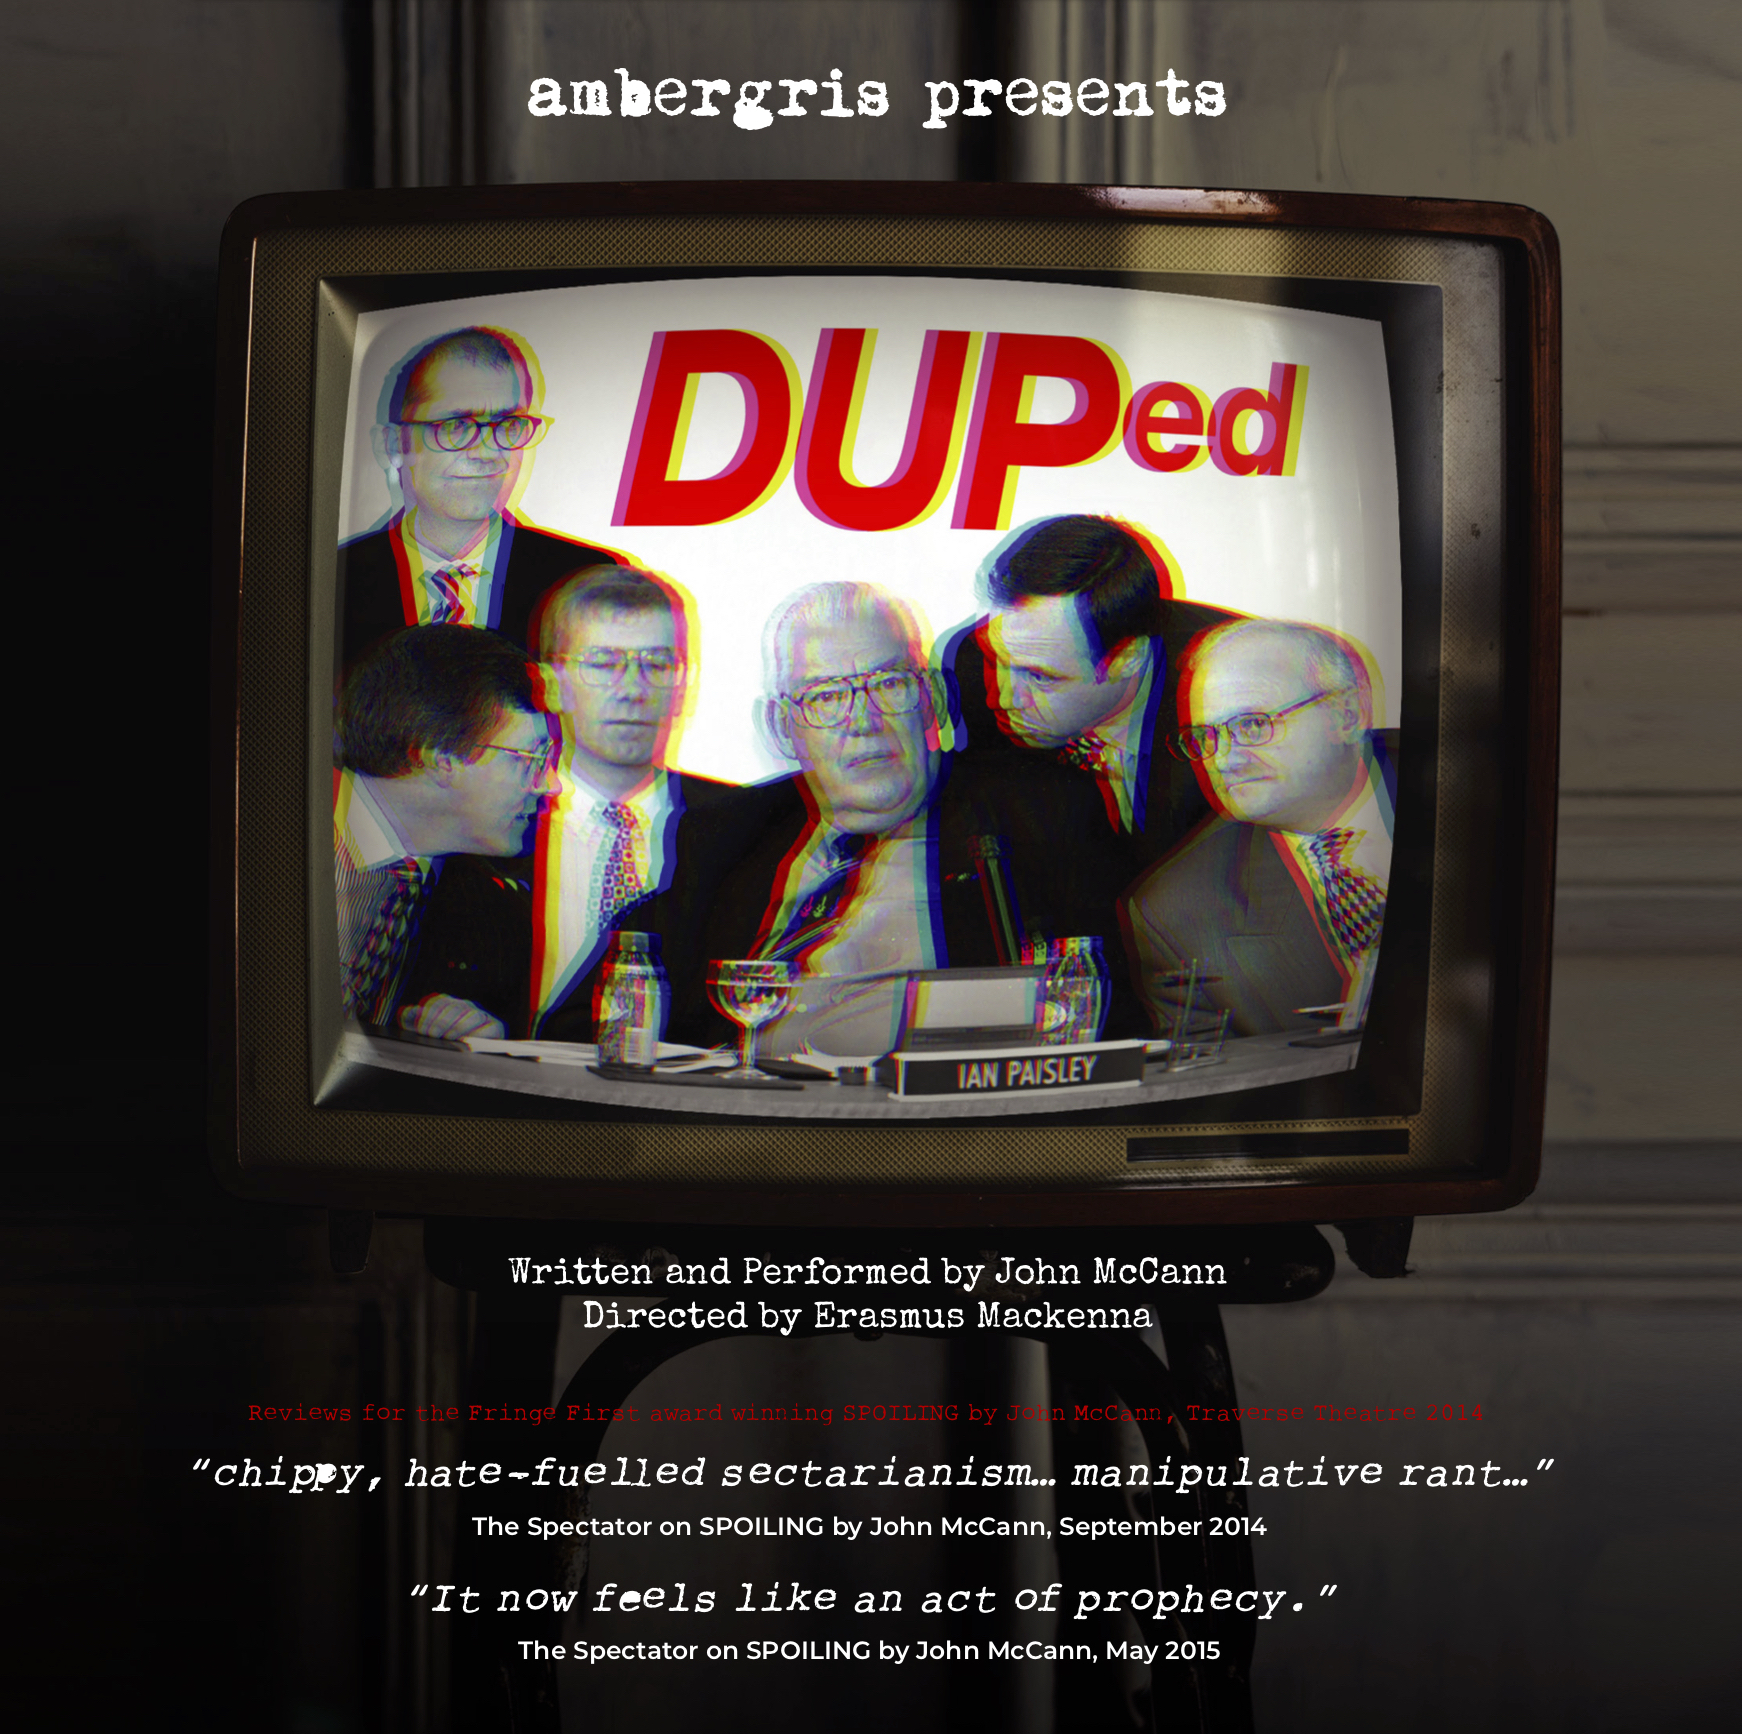 DUPed - Wednesday 27 - Saturday 30 March 2019